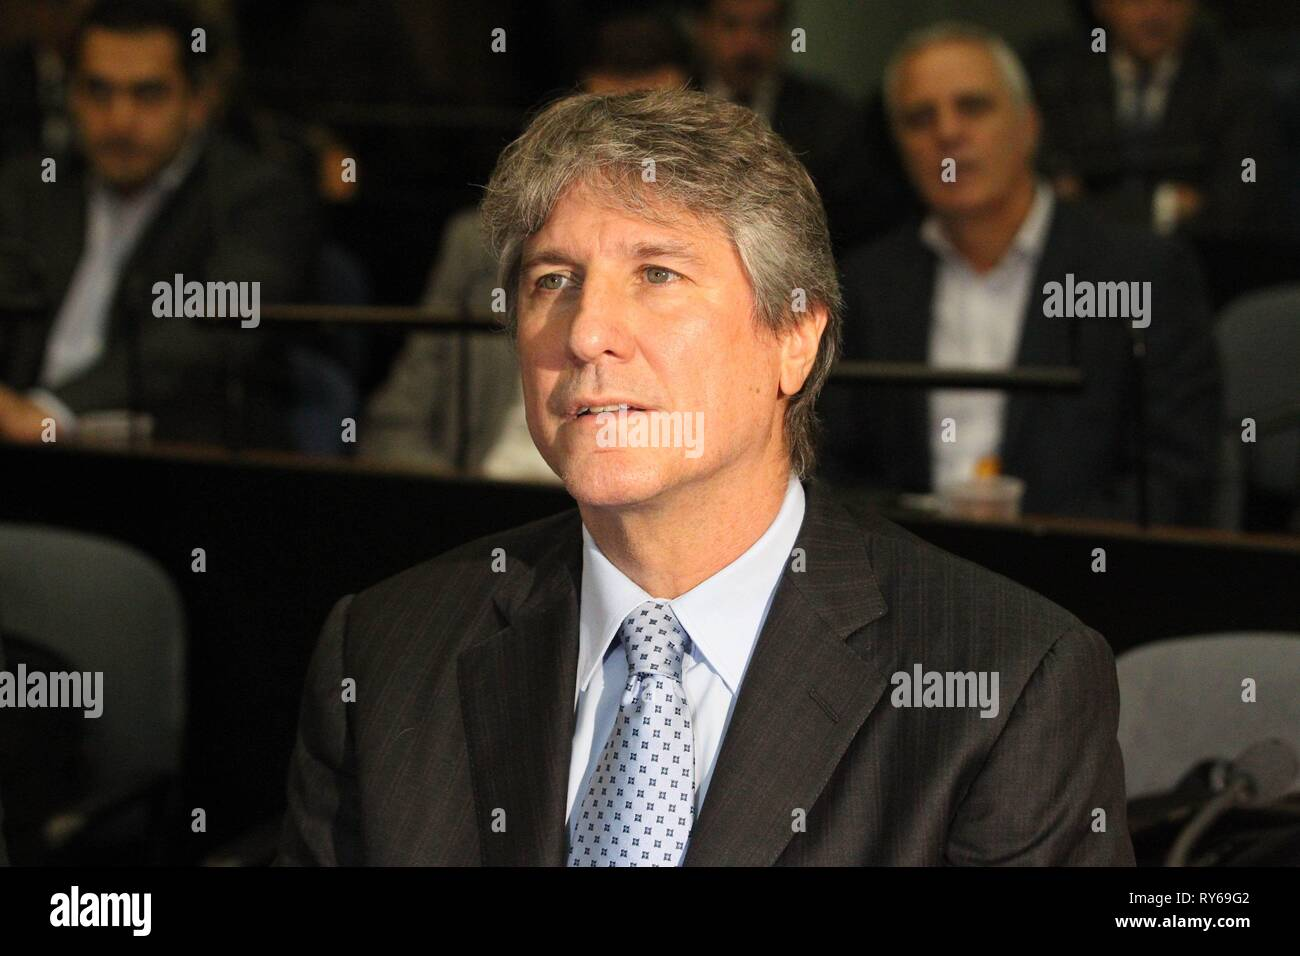 Argentinian former vice president Armando Boudou (2011-2015), already in prisson for corruption, attends a new trial for alleged irregular purchase of 19 high-end cars and the alleged falsification of documentation of a vehicle, in Buenos Aires, Argentina, 12 March 2019. EFE/Aitor Pereira - Stock Image